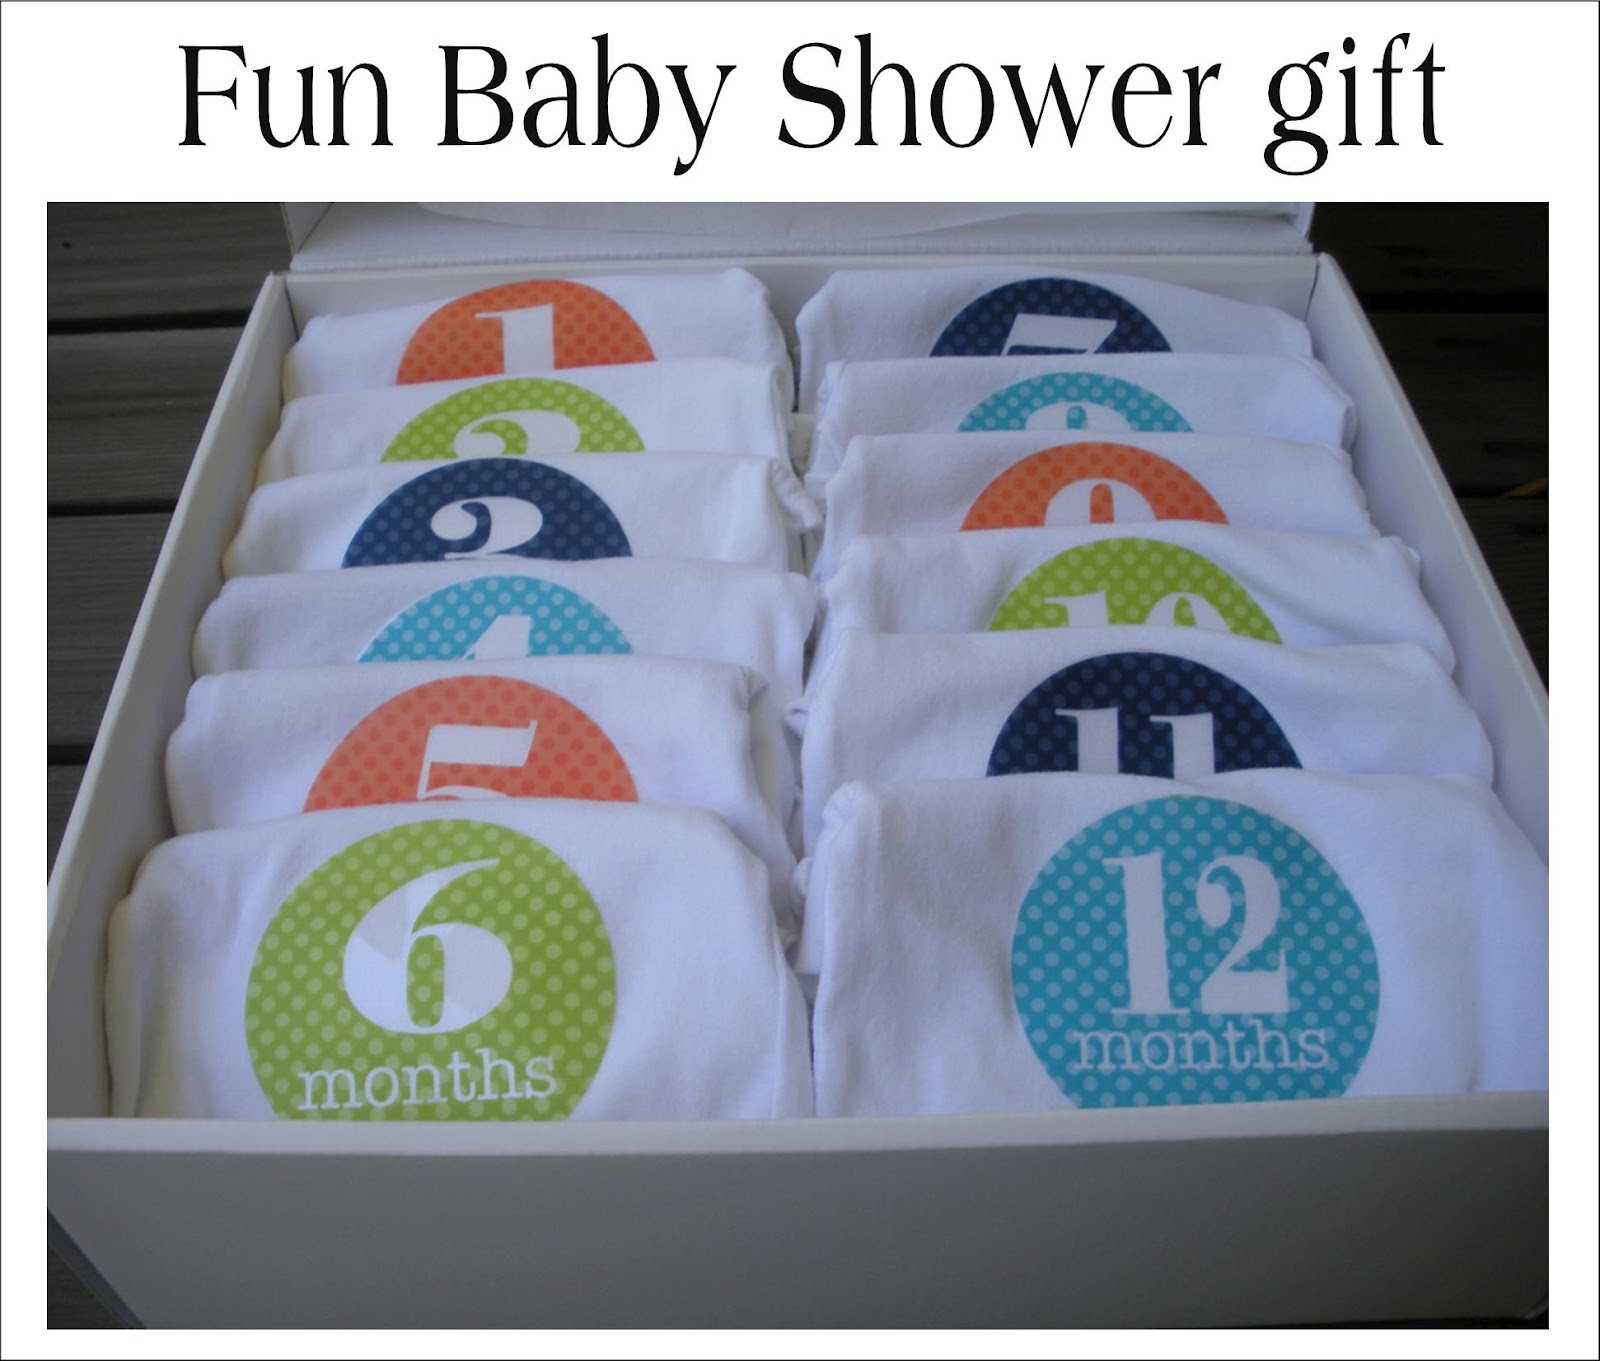 Best ideas about Cute Baby Boy Gift Ideas . Save or Pin It s Written on the Wall Cute Ideas for Your Baby Shower Now.